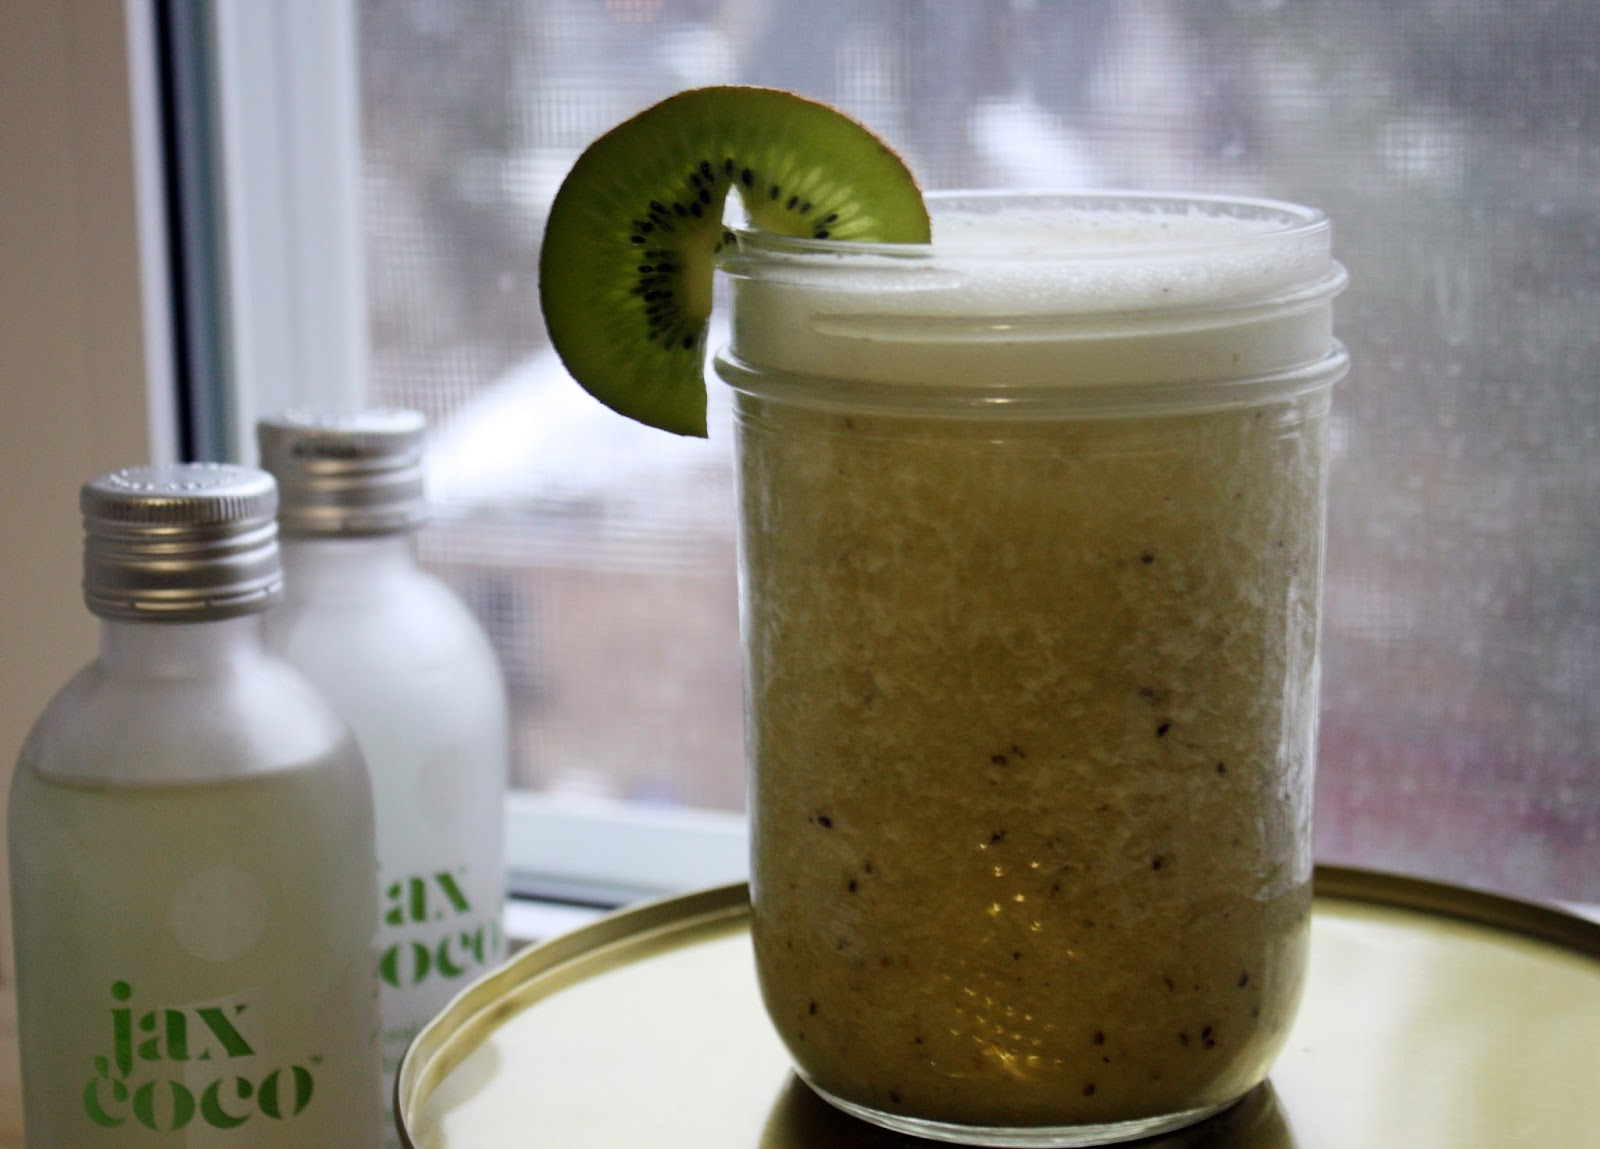 jax coco coconut water smoothie